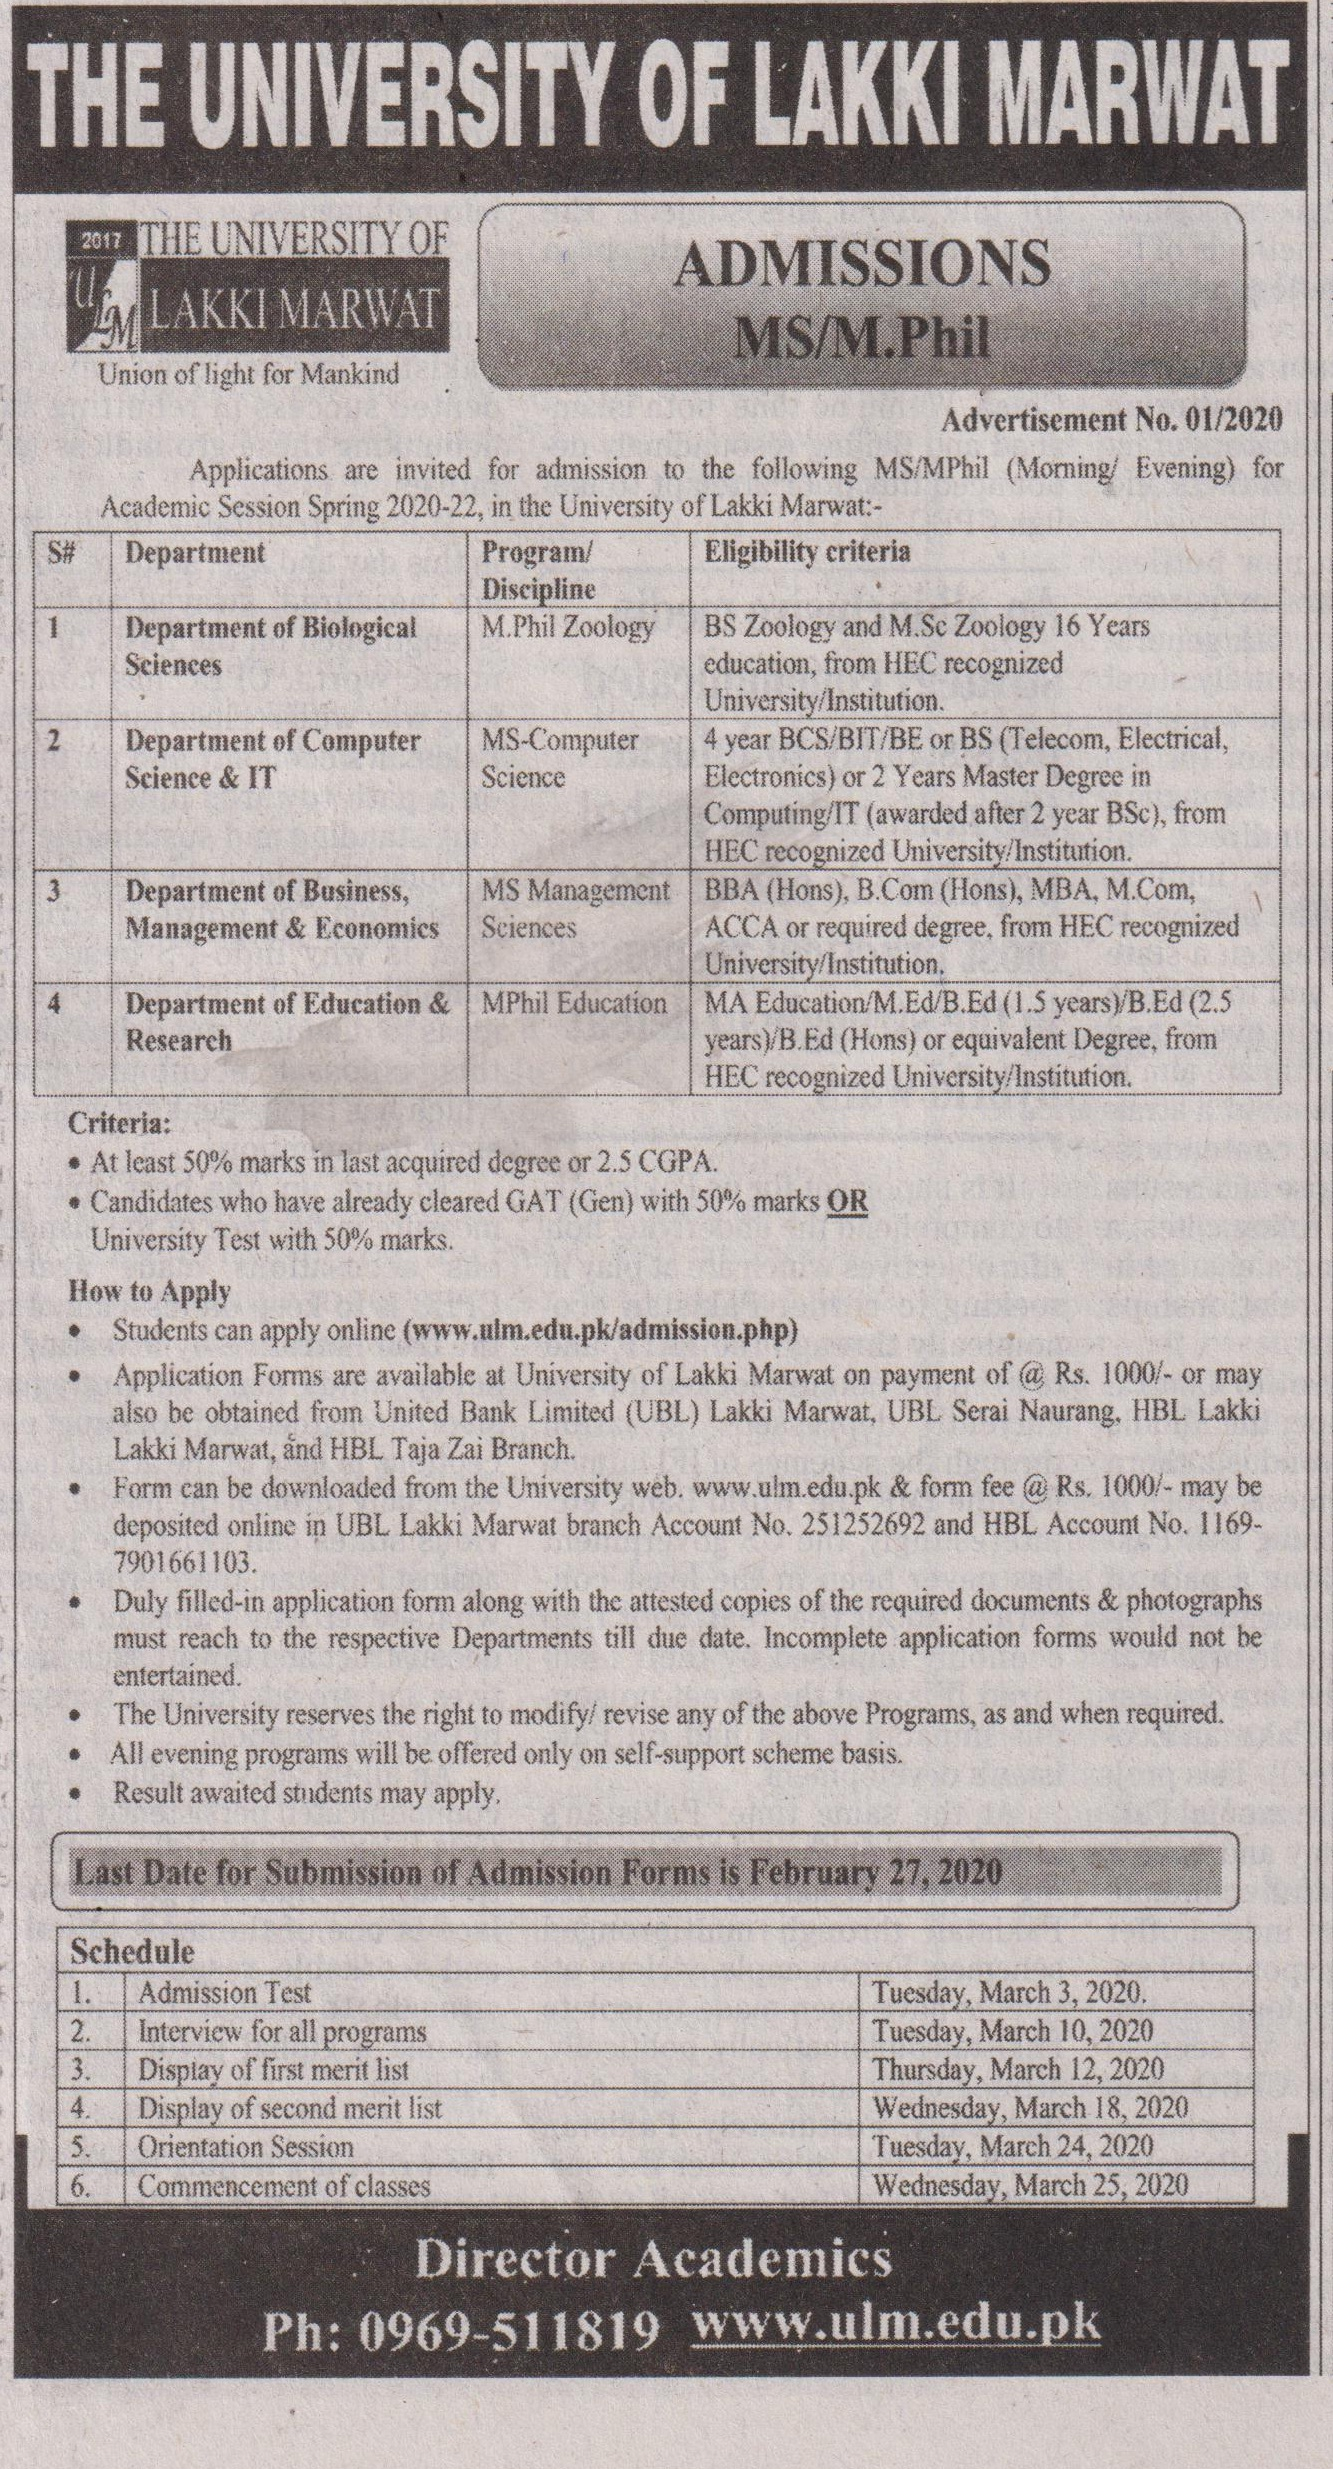 The University Of Lakki Marwat Admissions